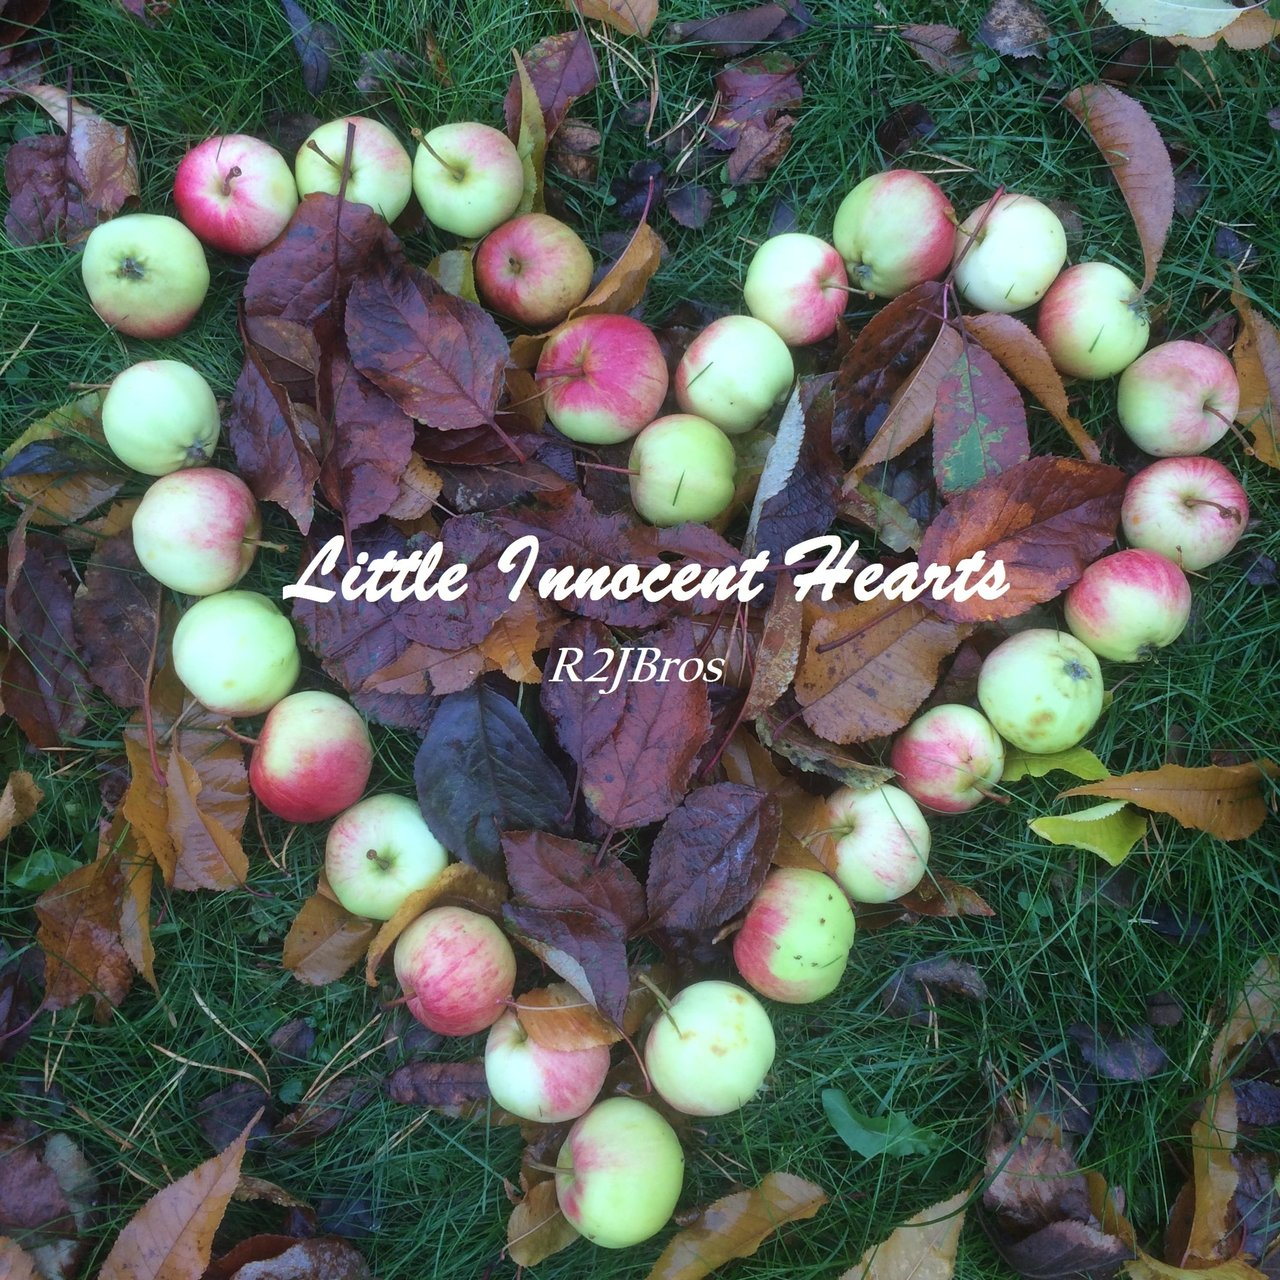 Little Innocent Hearts